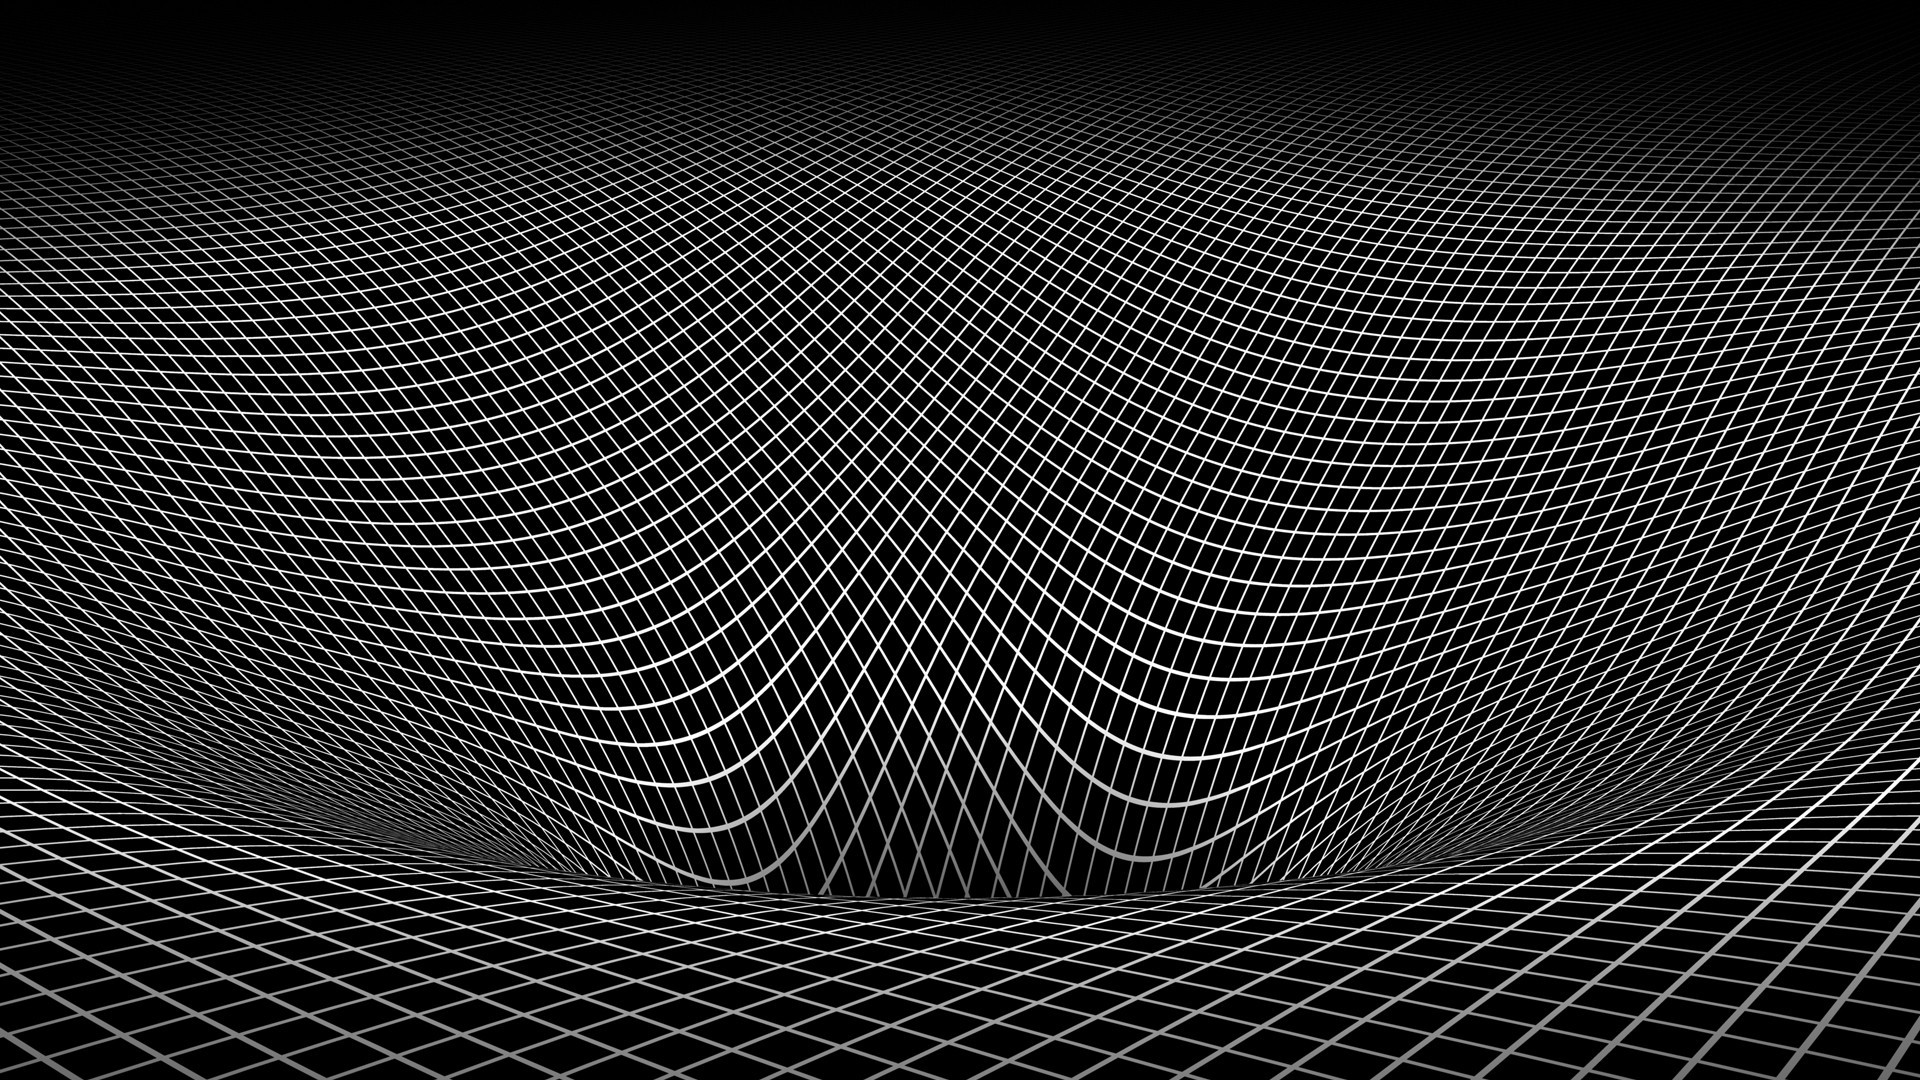 Abstract black and white gravity hole 3d warped wallpaper for Black 3d wallpaper